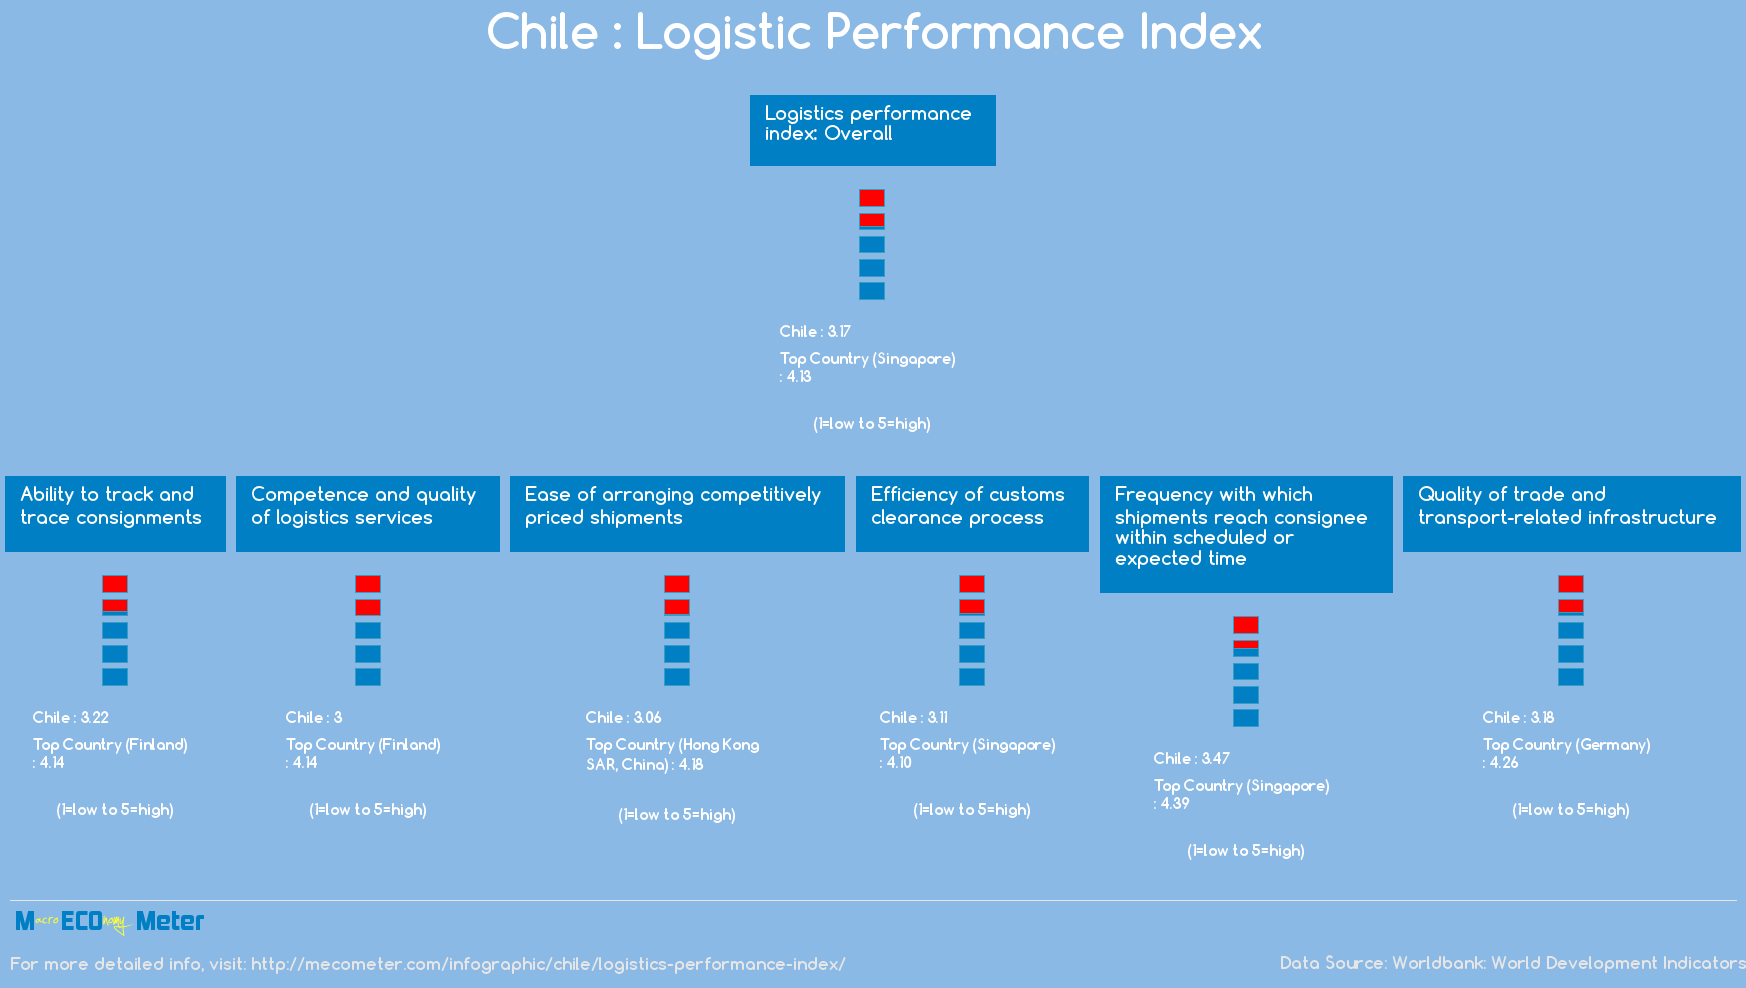 Chile : Logistic Performance Index